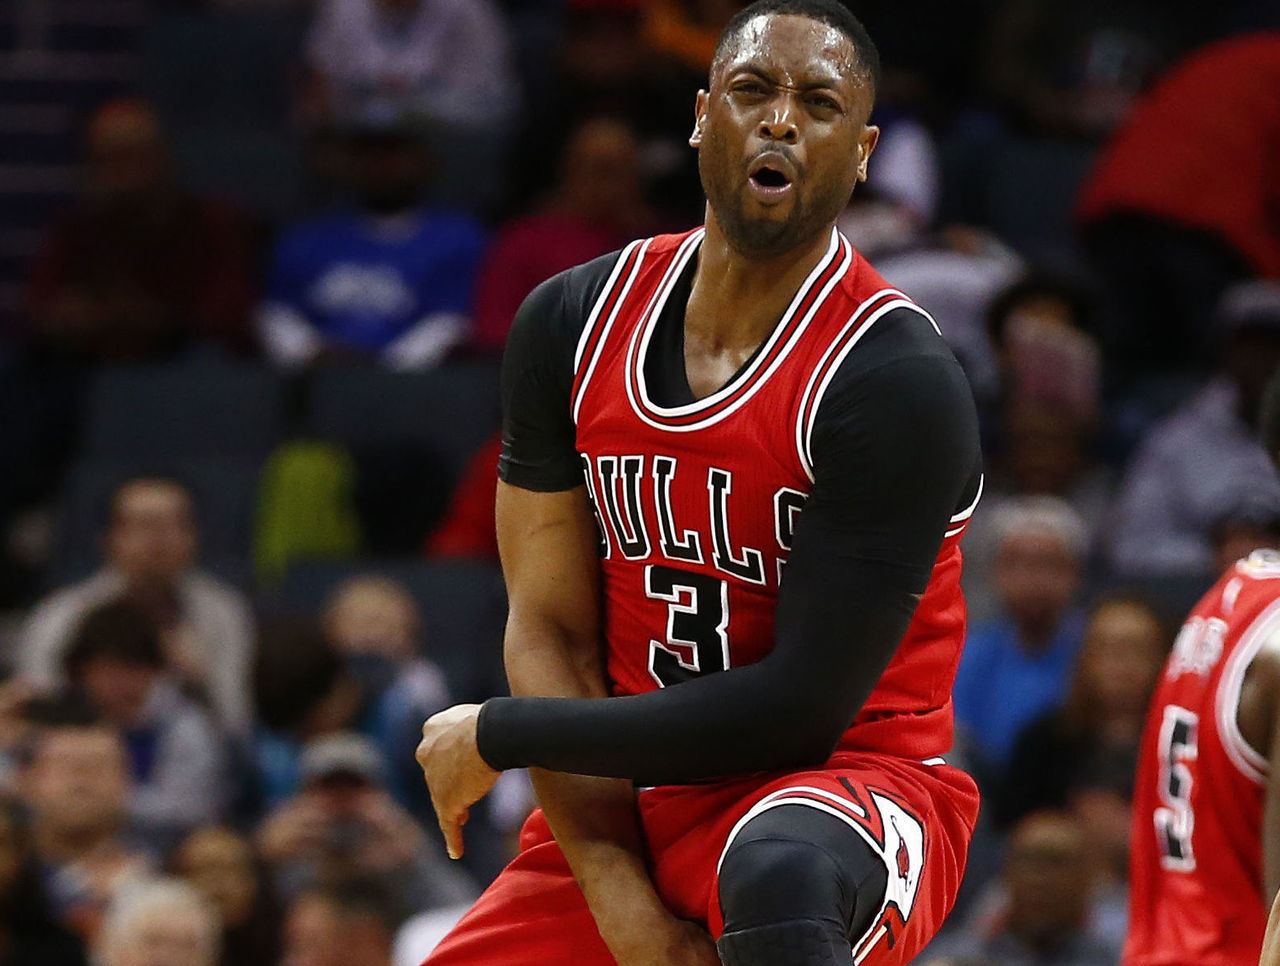 Cropped 2017 03 14t020440z 1580274769 nocid rtrmadp 3 nba chicago bulls at charlotte hornets